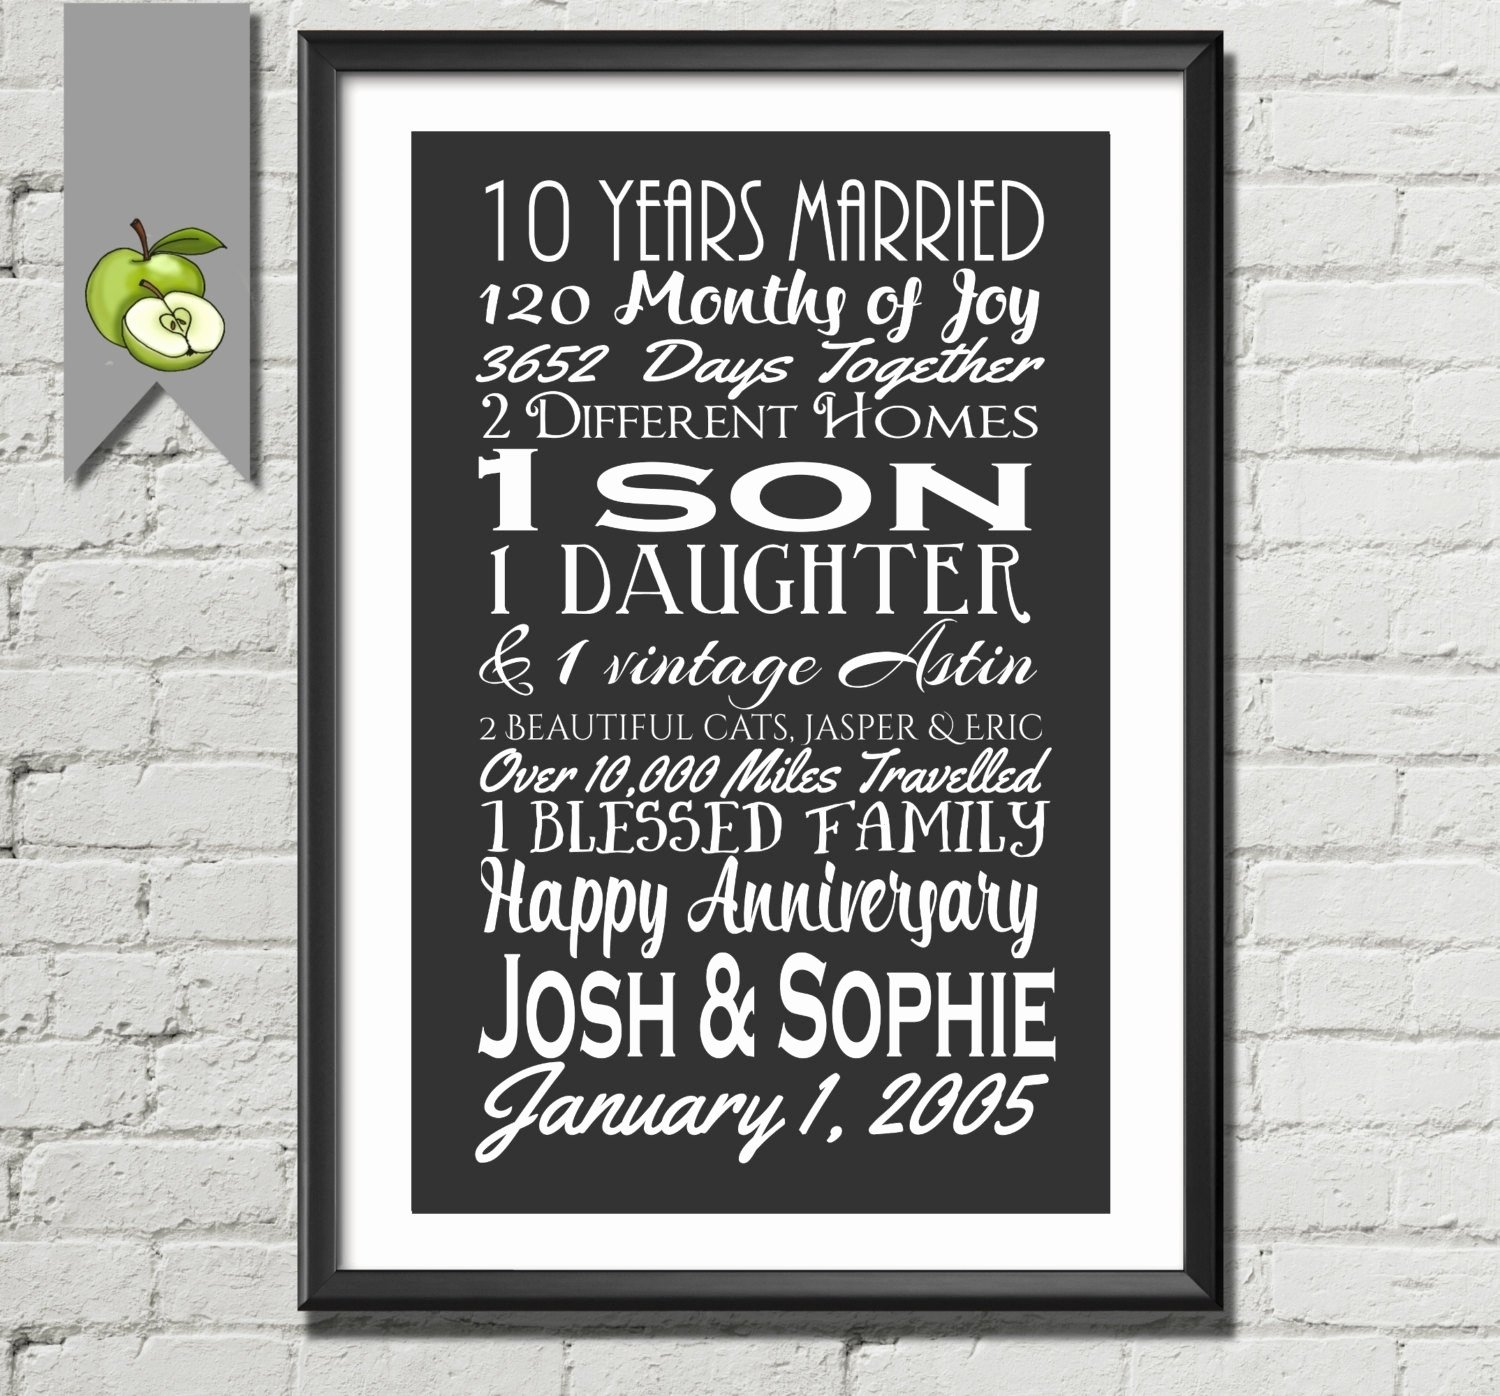 10 Awesome 10Th Anniversary Ideas For Him luxury 10th wedding anniversary gift ideas for husband daniel pianetti 2020